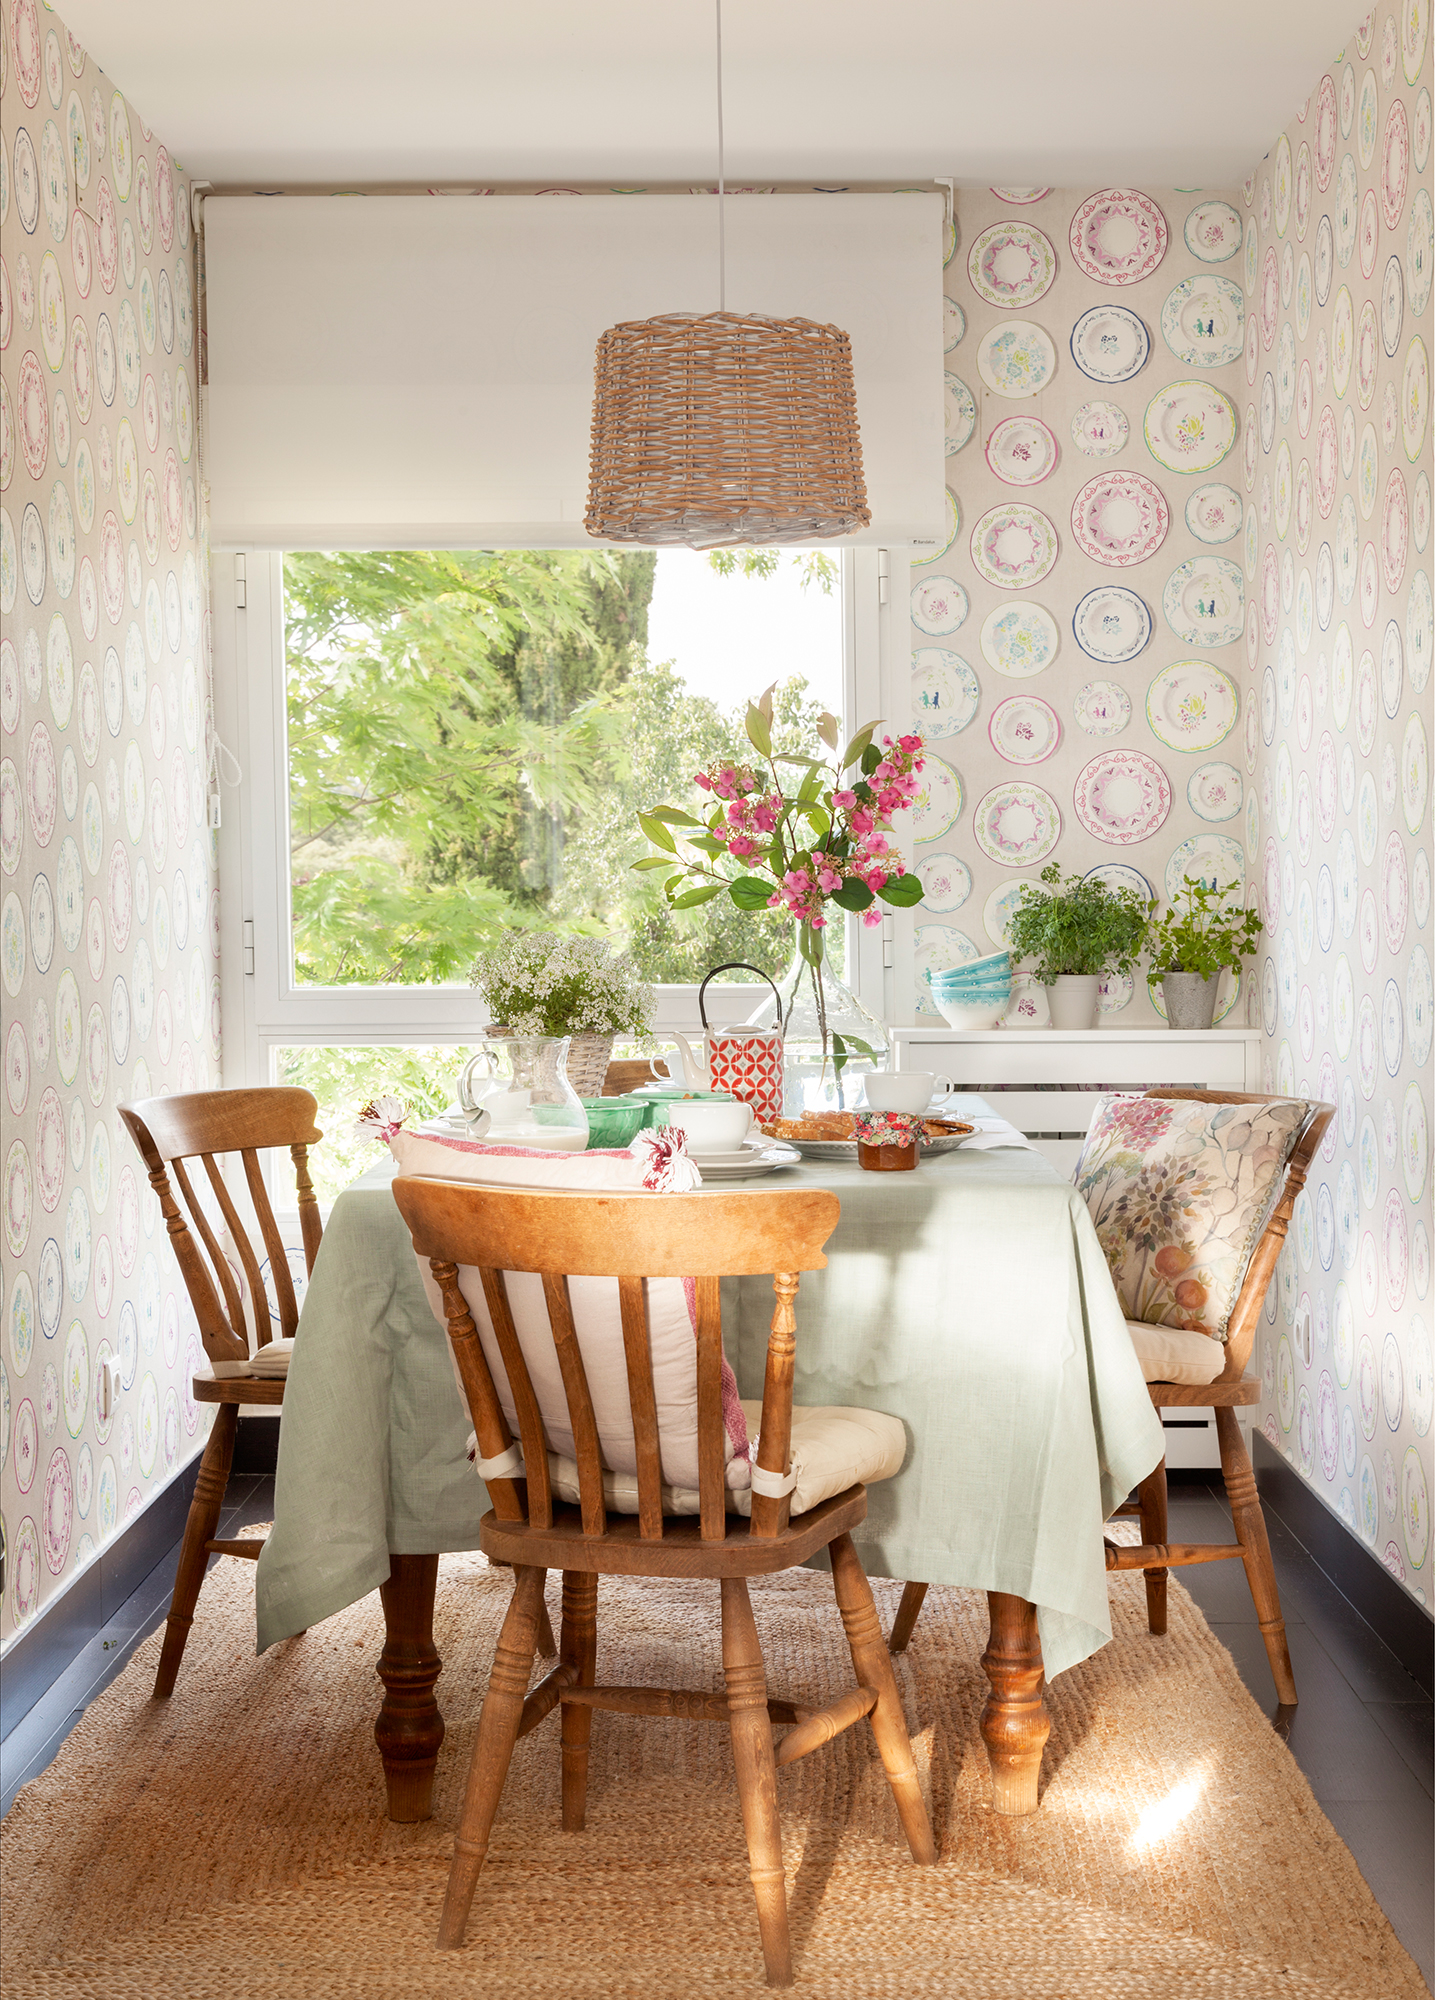 Comedor 15 ideas para decorar sus paredes - Paredes decoradas modernas ...